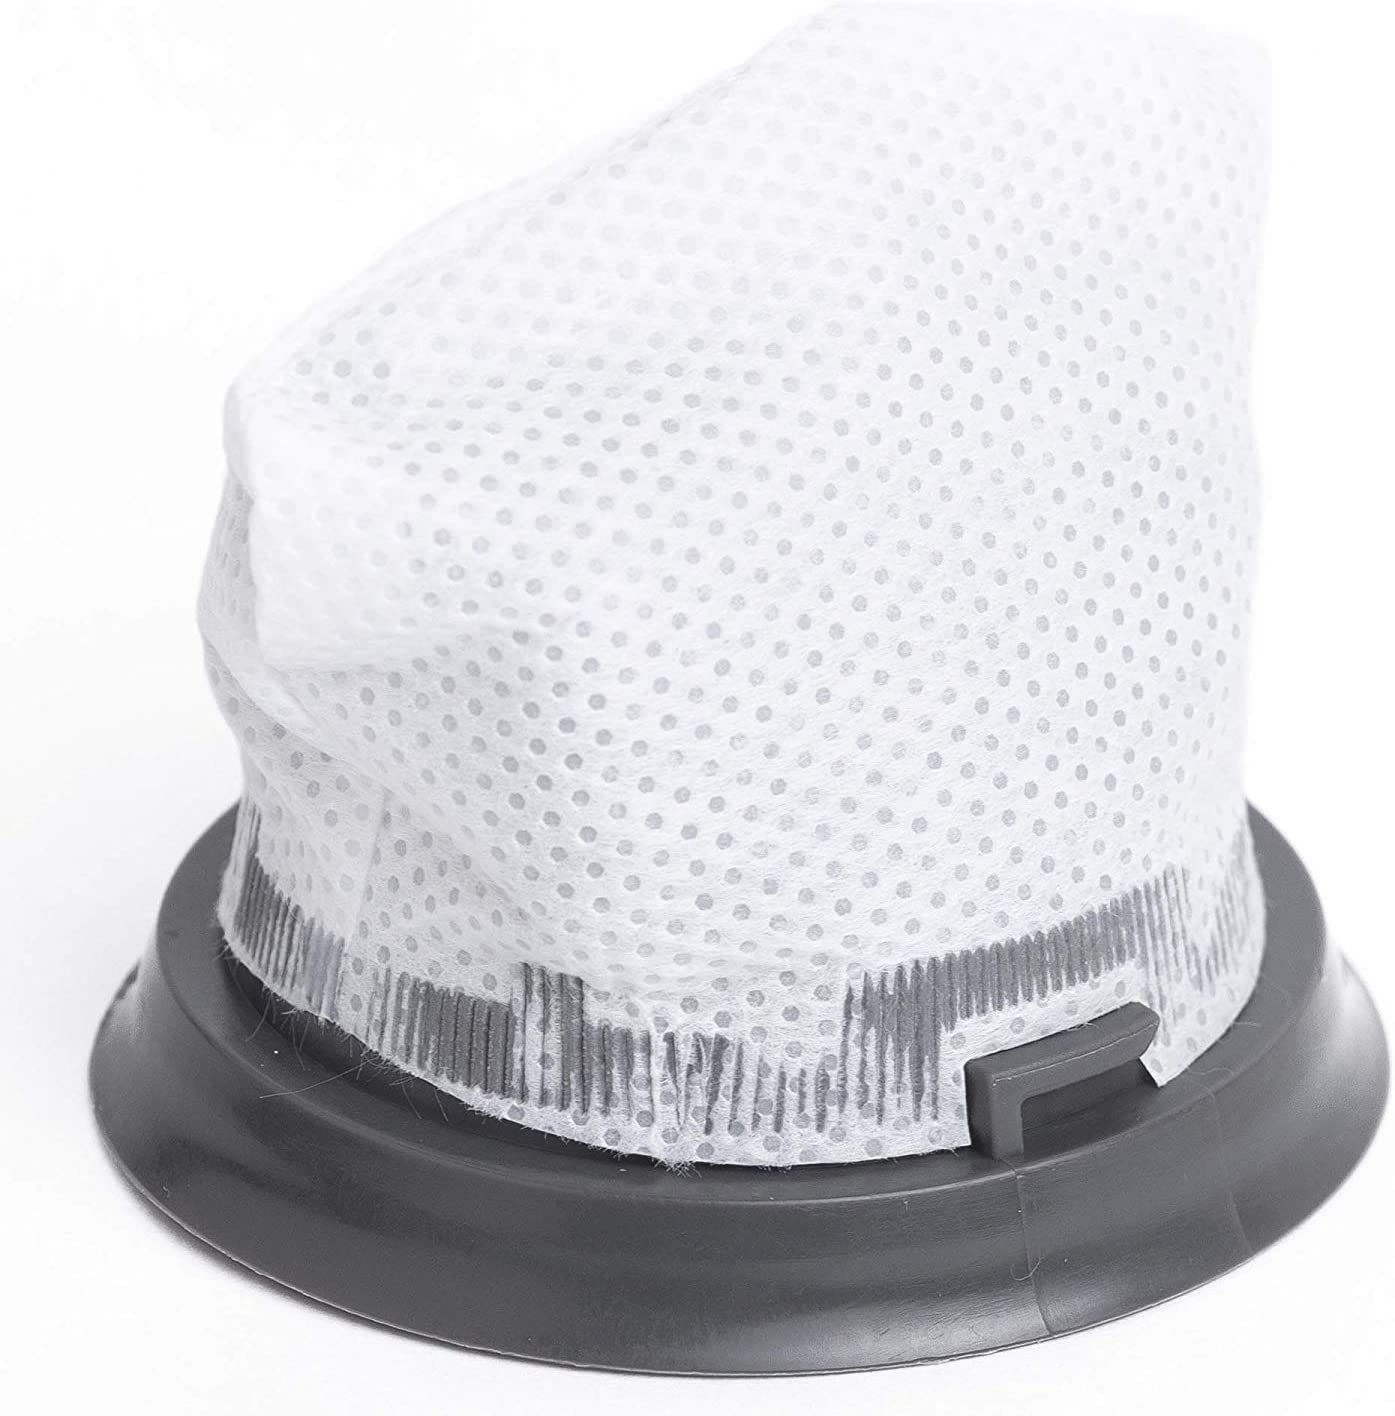 Green Label Replacement Filter 1479 for Bissell Bolt Vacuum Cleaners